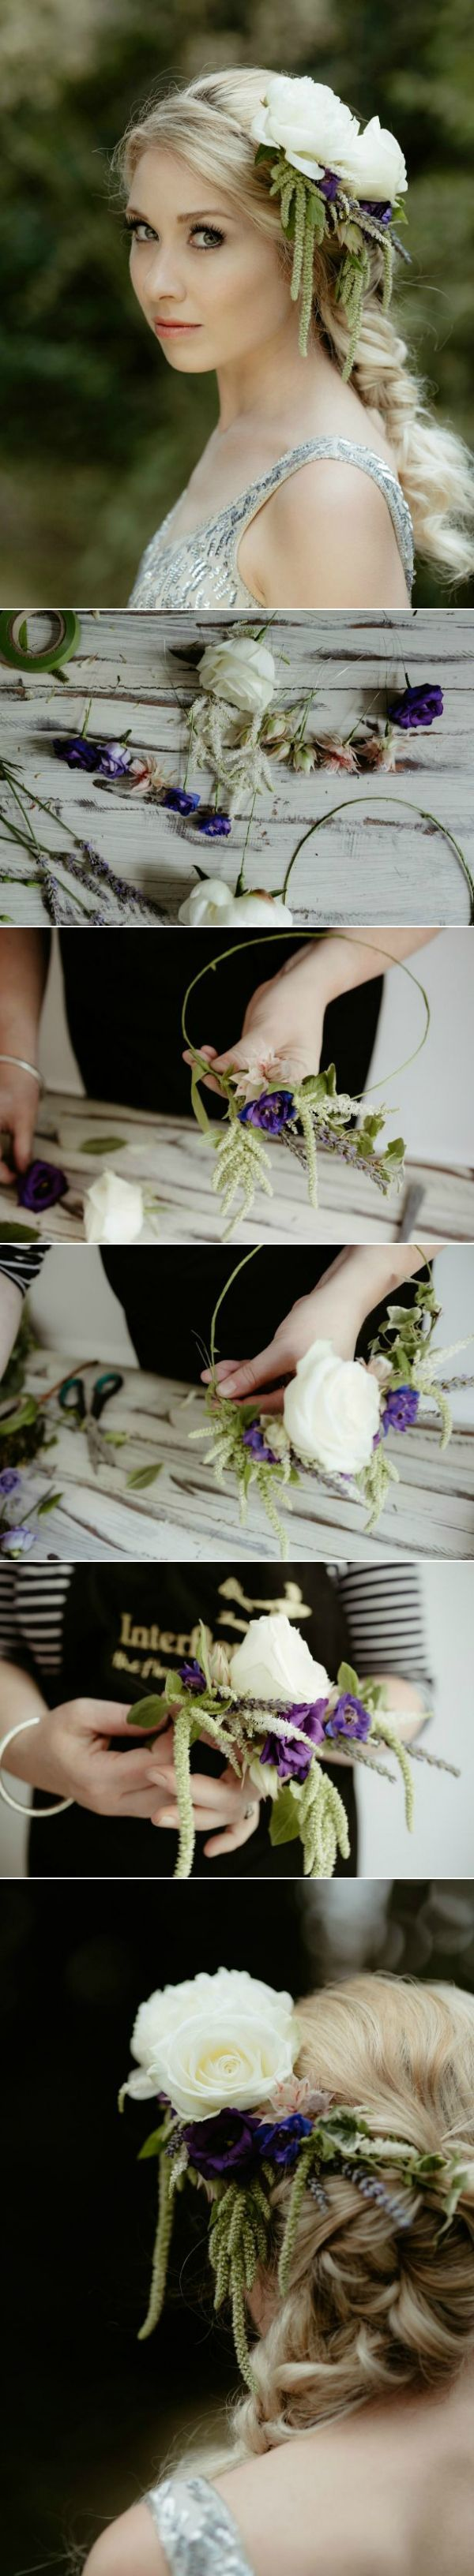 Flowers Diy How To Make A Half Flower Crown Floral Headdress